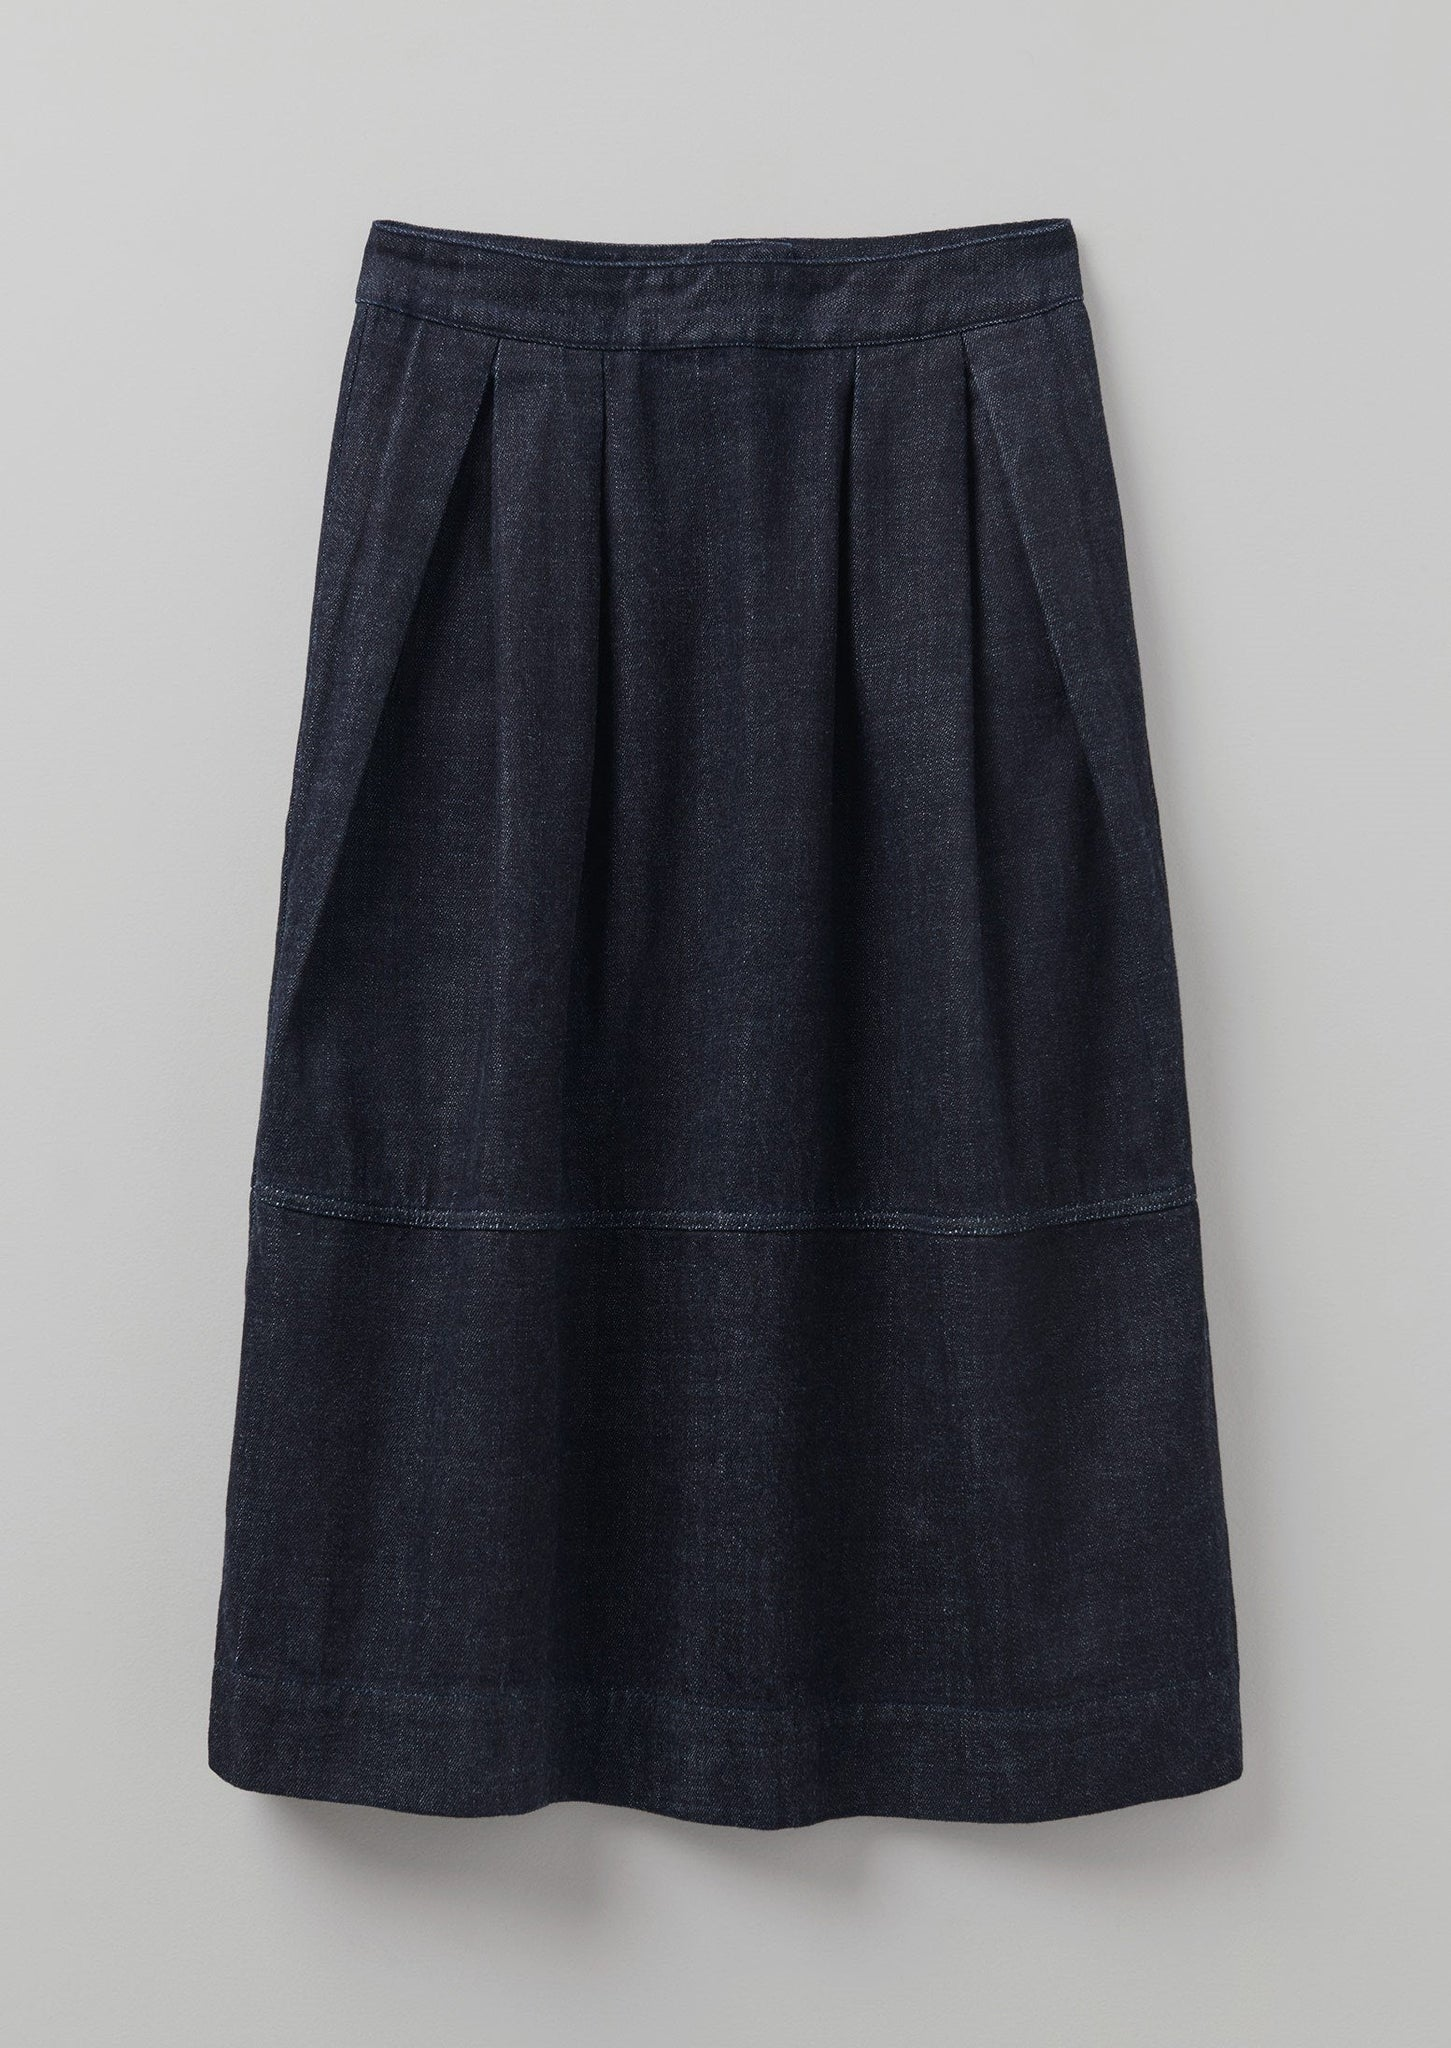 Indigo Denim Panel Skirt | Indigo ?id=16692154171426